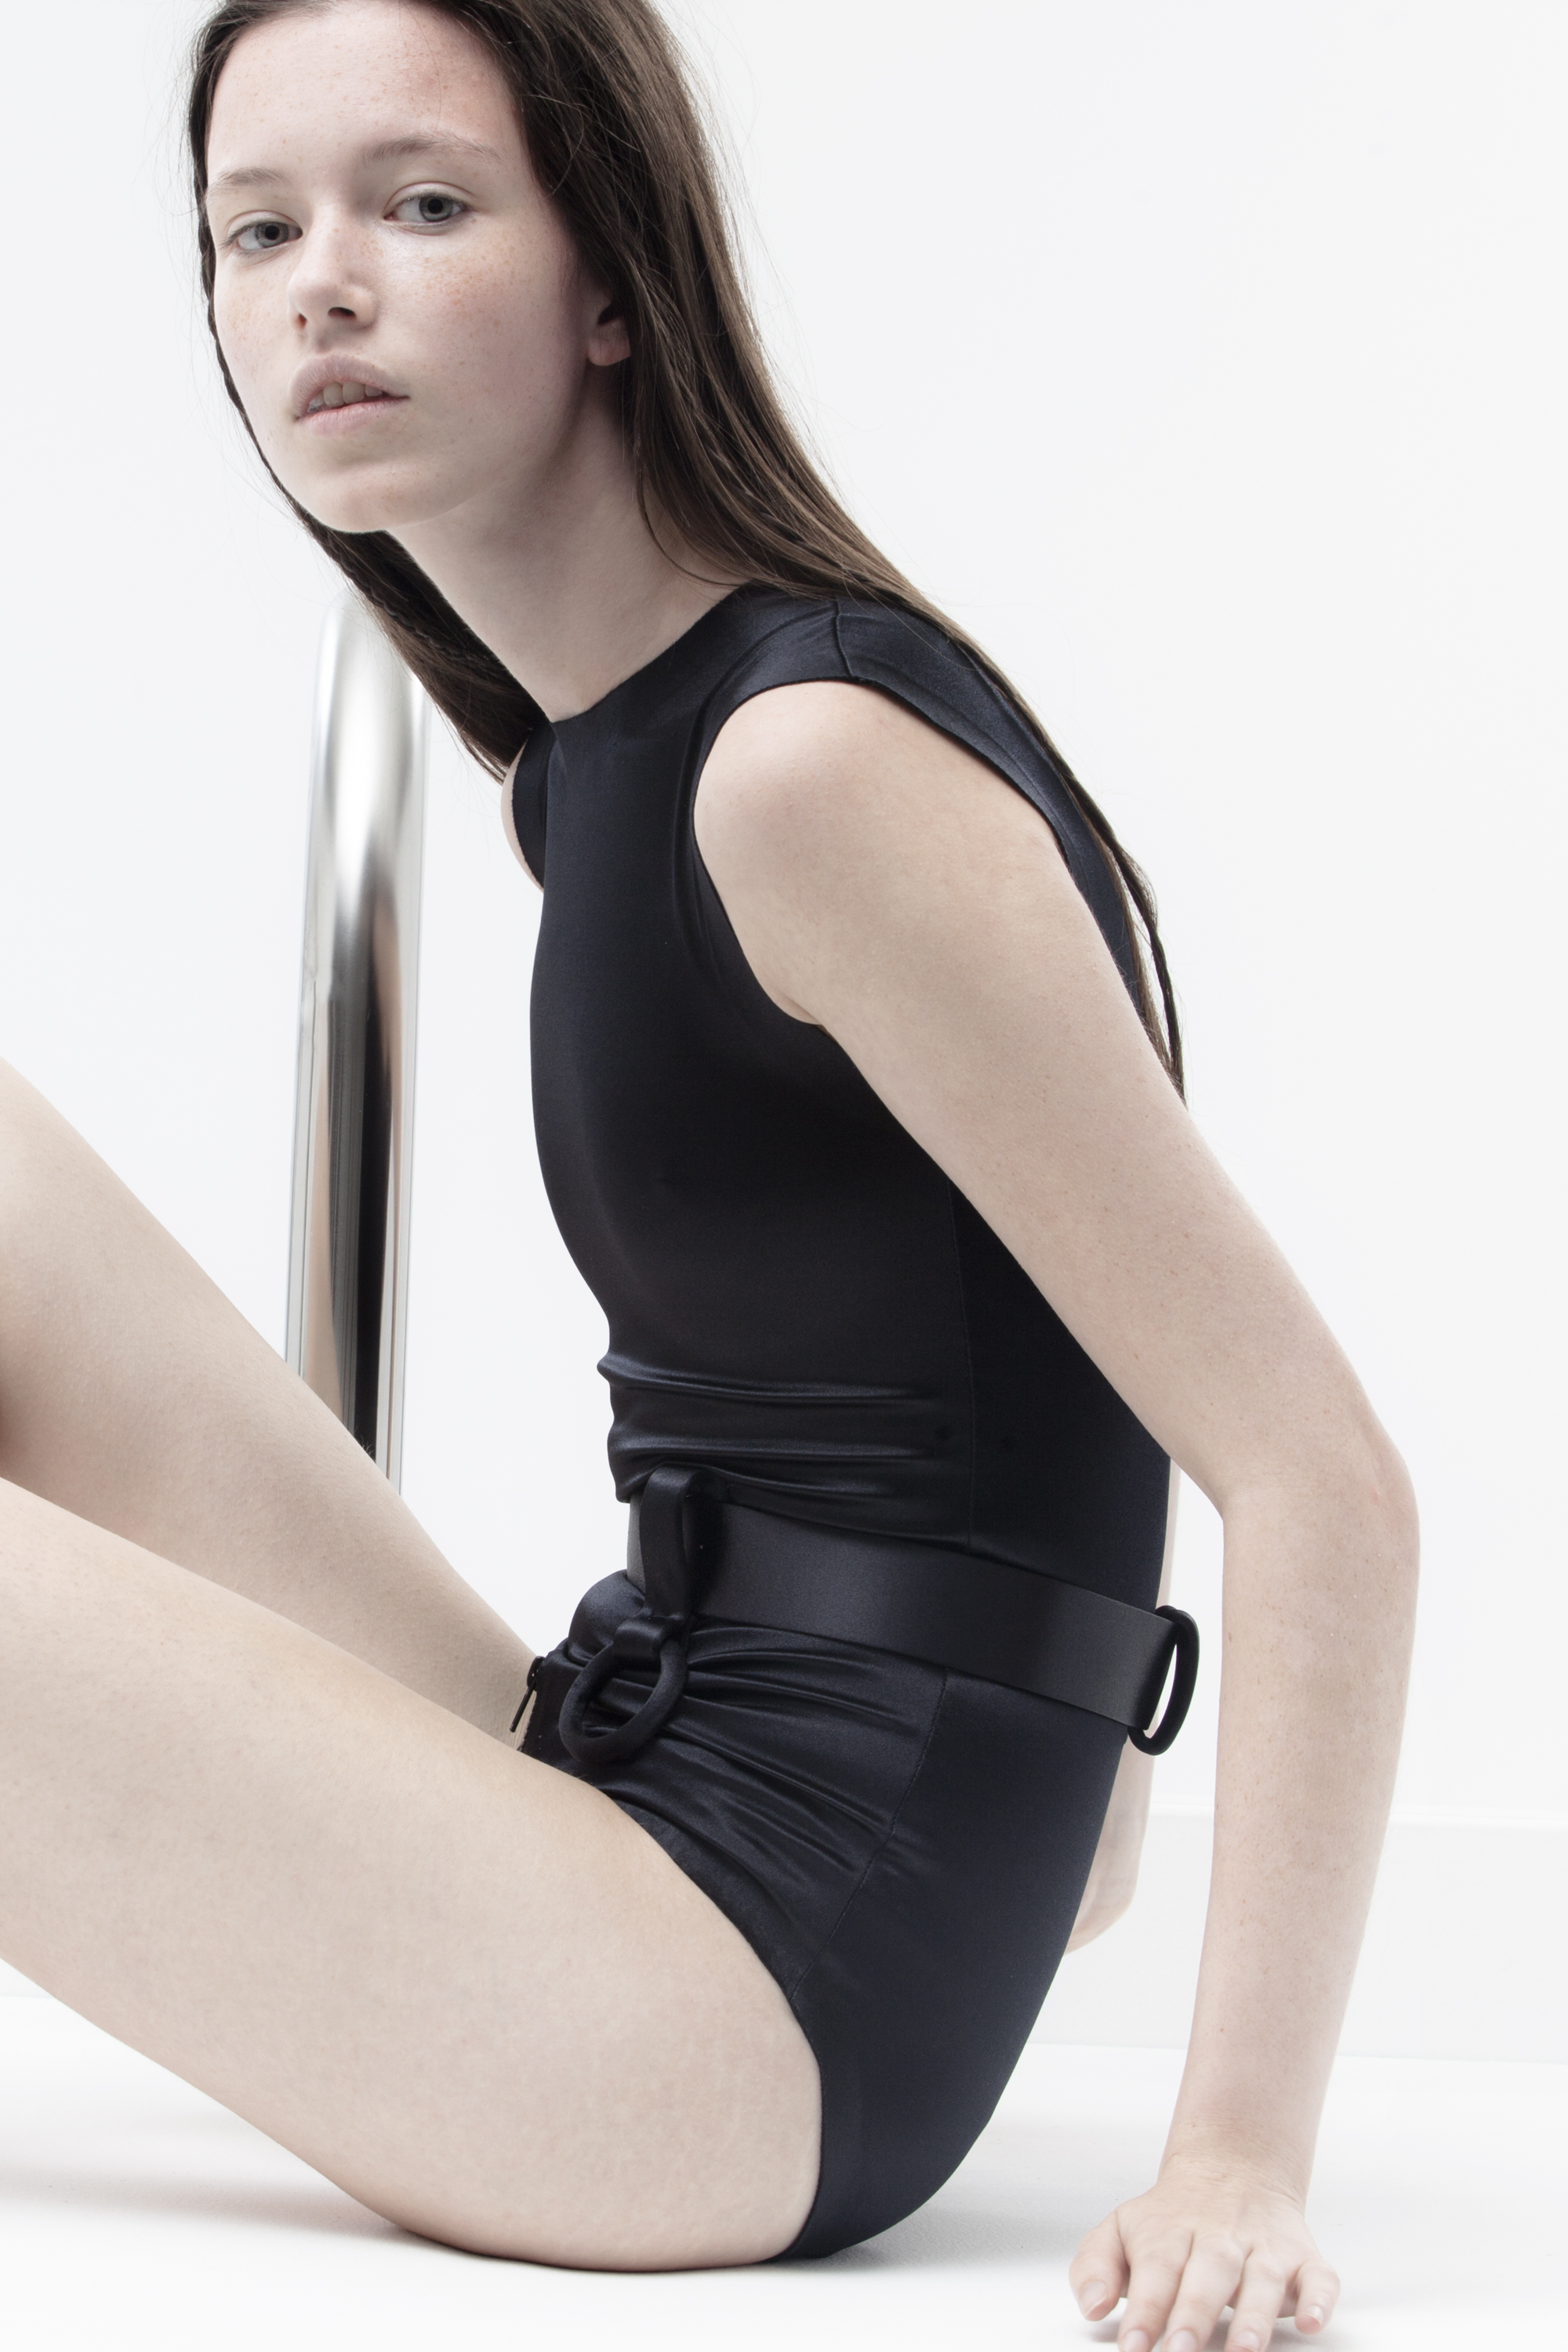 Melitta Baumeister SS16 Ph. Paul Jung Look -16.jpg